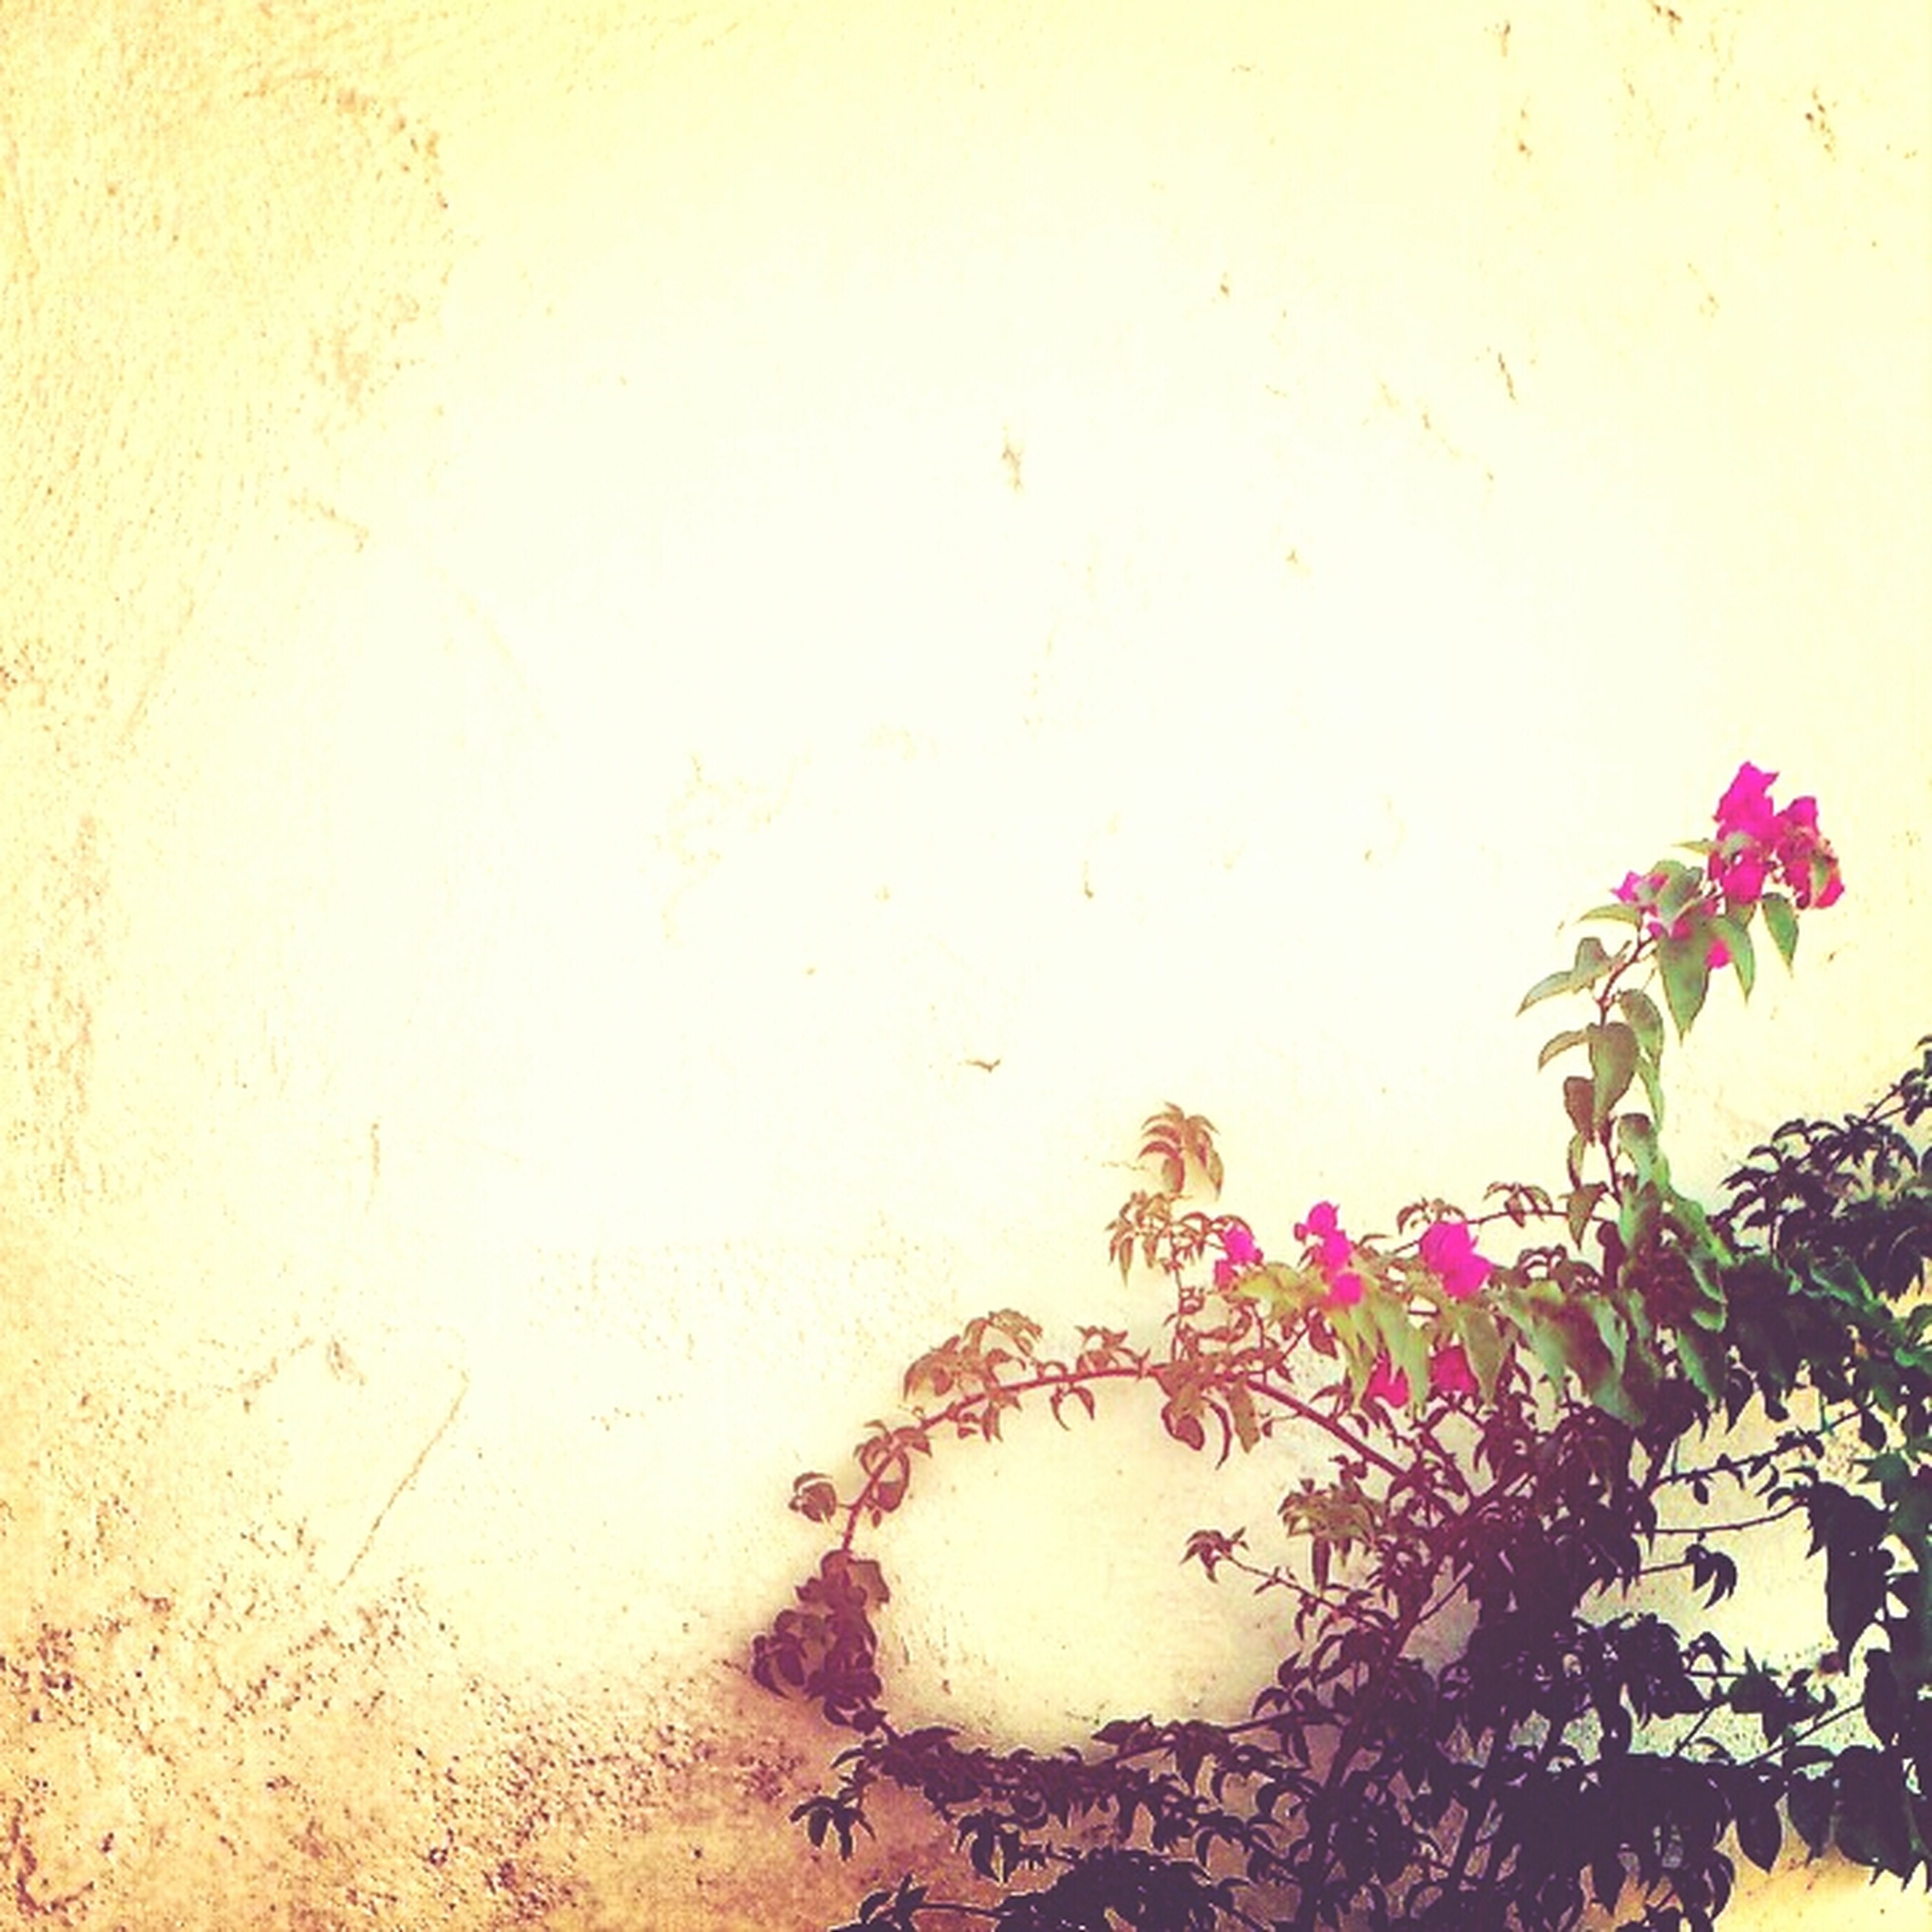 flower, growth, fragility, freshness, plant, nature, petal, close-up, beauty in nature, wall - building feature, stem, leaf, no people, pink color, day, copy space, outdoors, flower head, growing, blooming